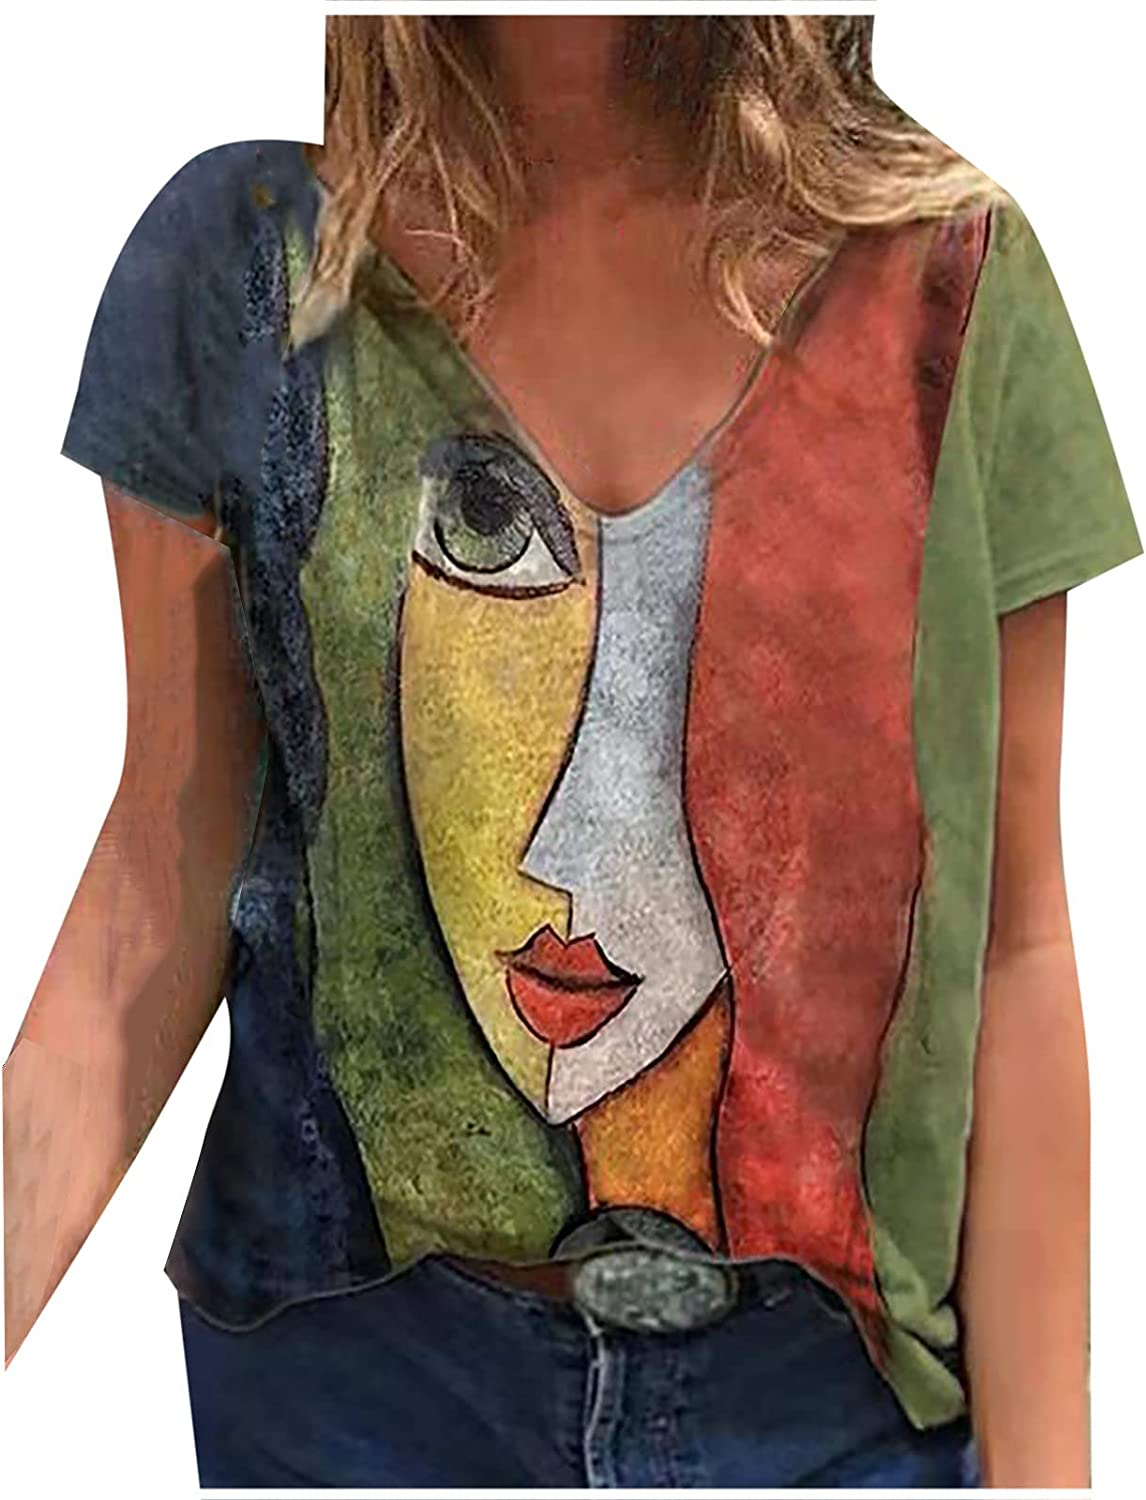 Women's Casual T-Shirt Summer Fashion Short Sleeve V-Neck Floral Shirt Loose Pullover Blouse Tops